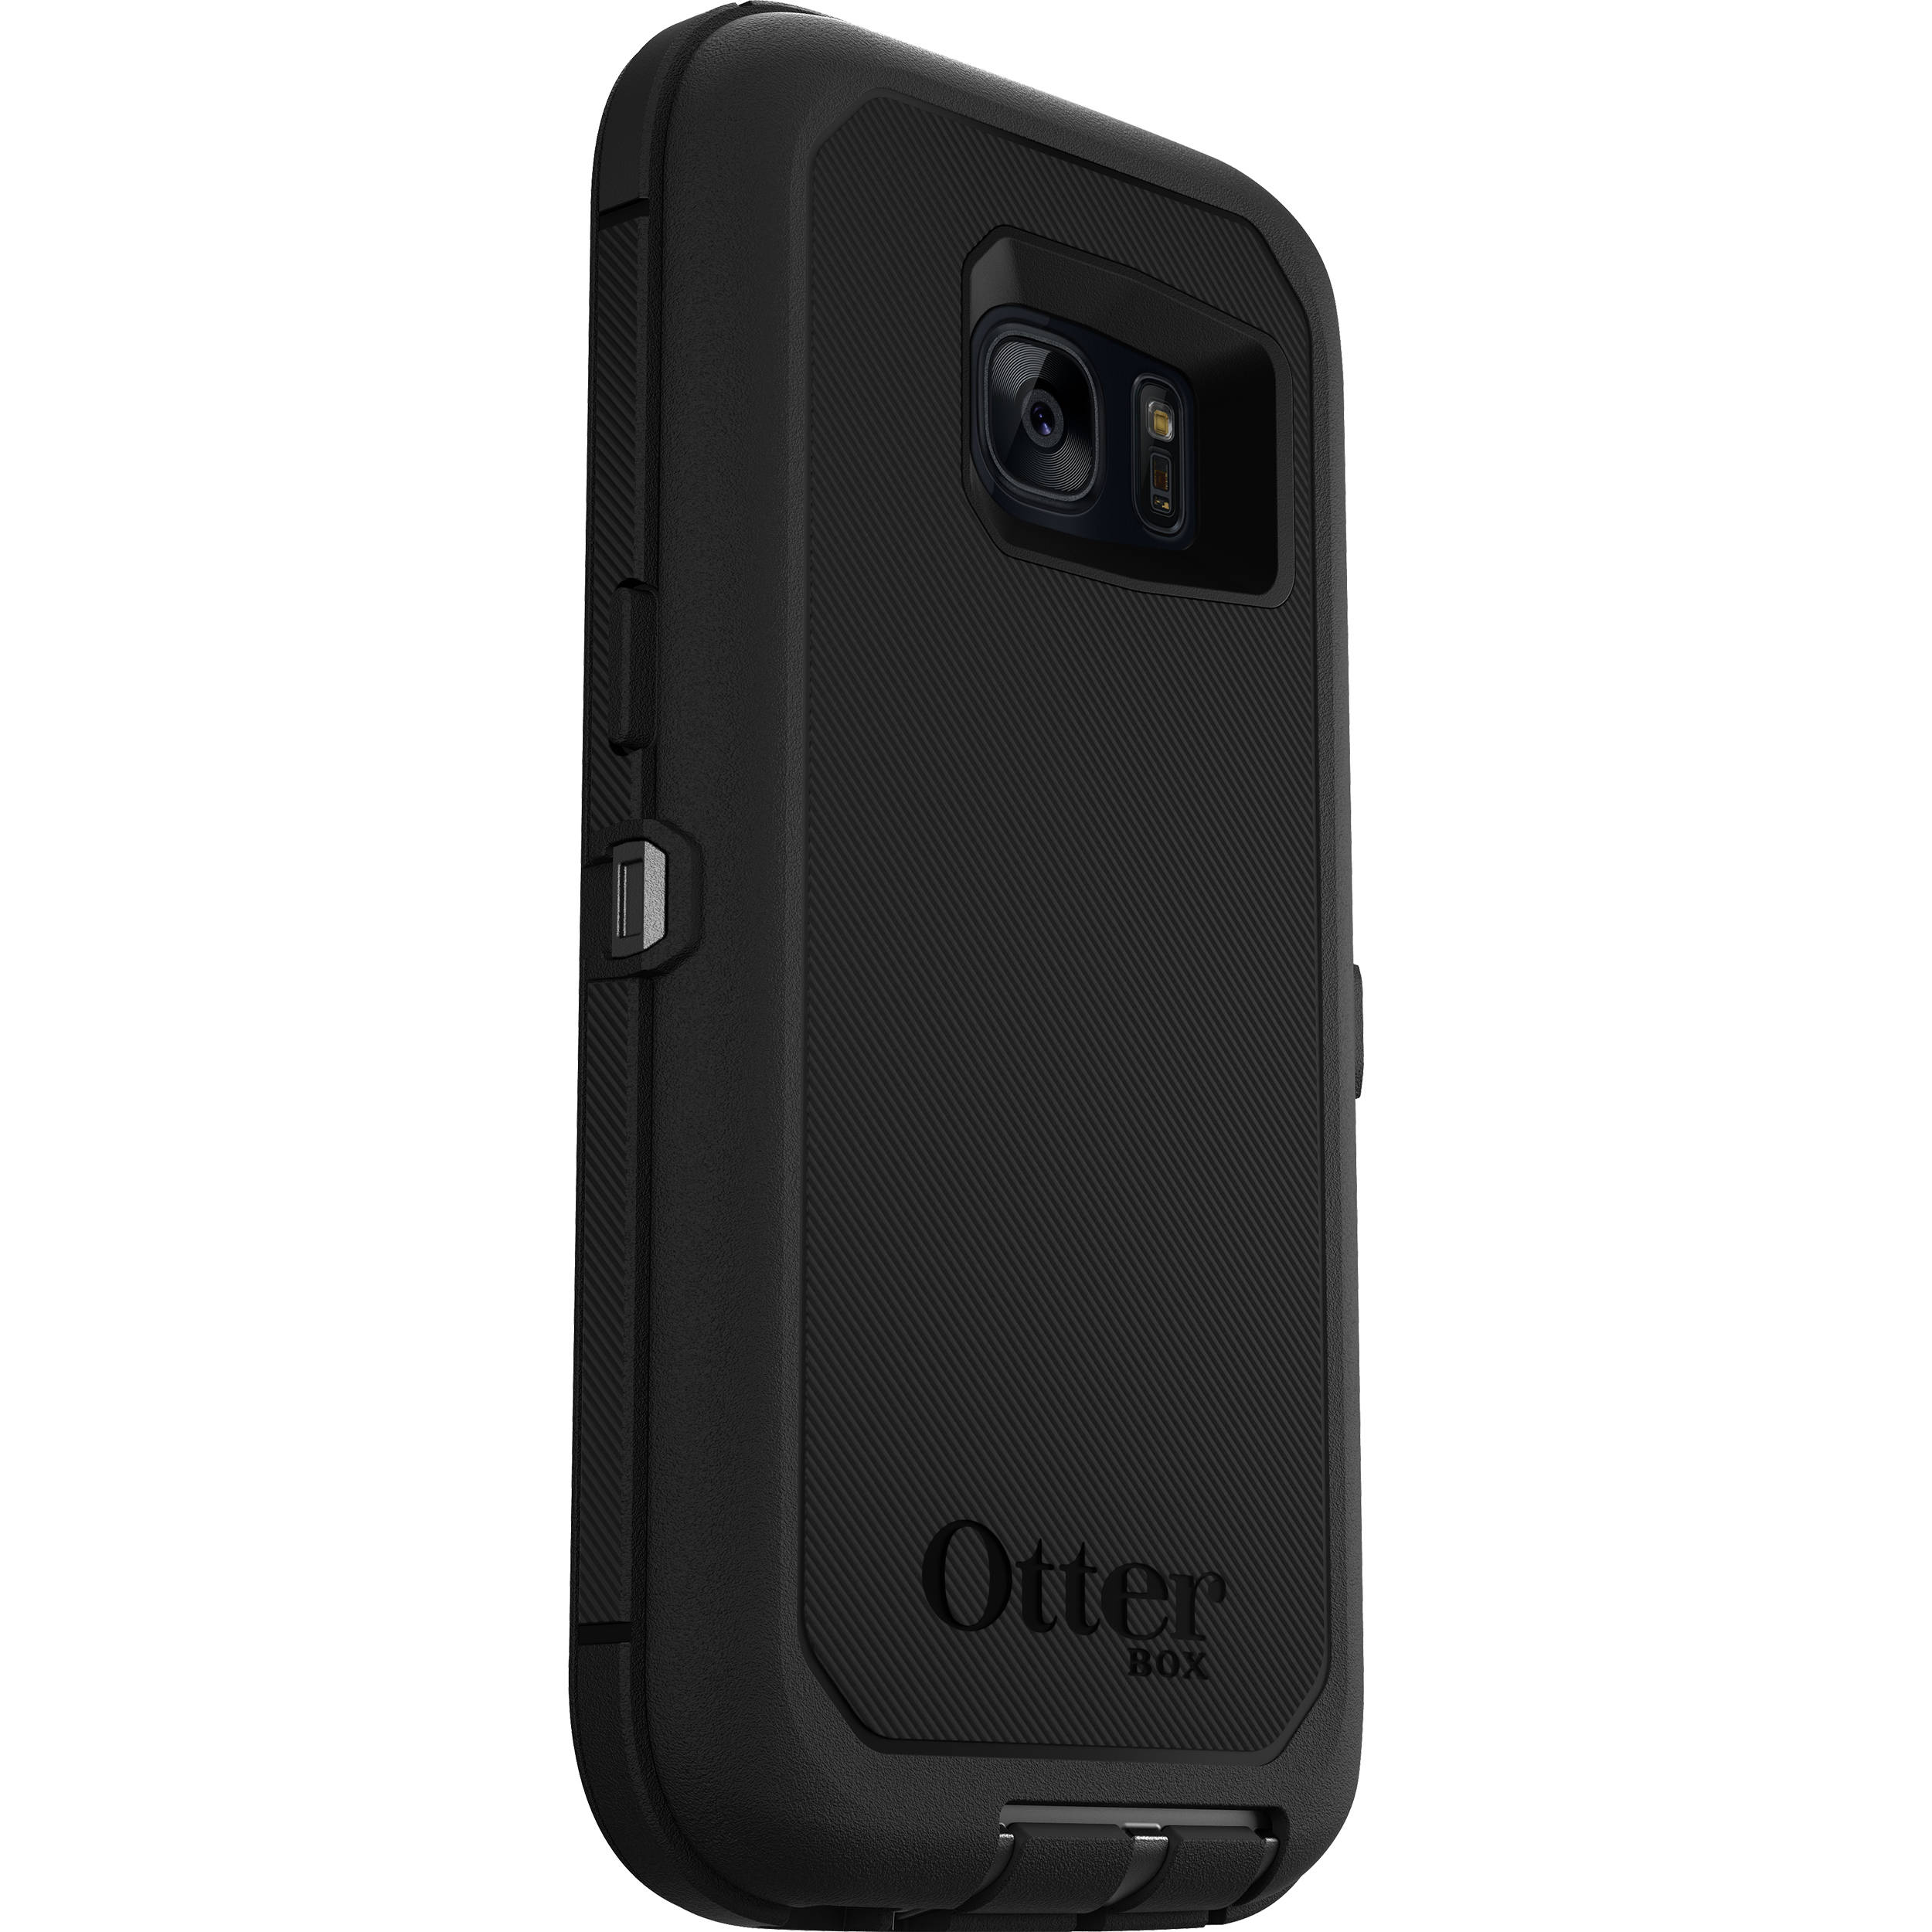 hot sale online 2225a e7793 OtterBox Defender Series Case for Galaxy S7 (Black)